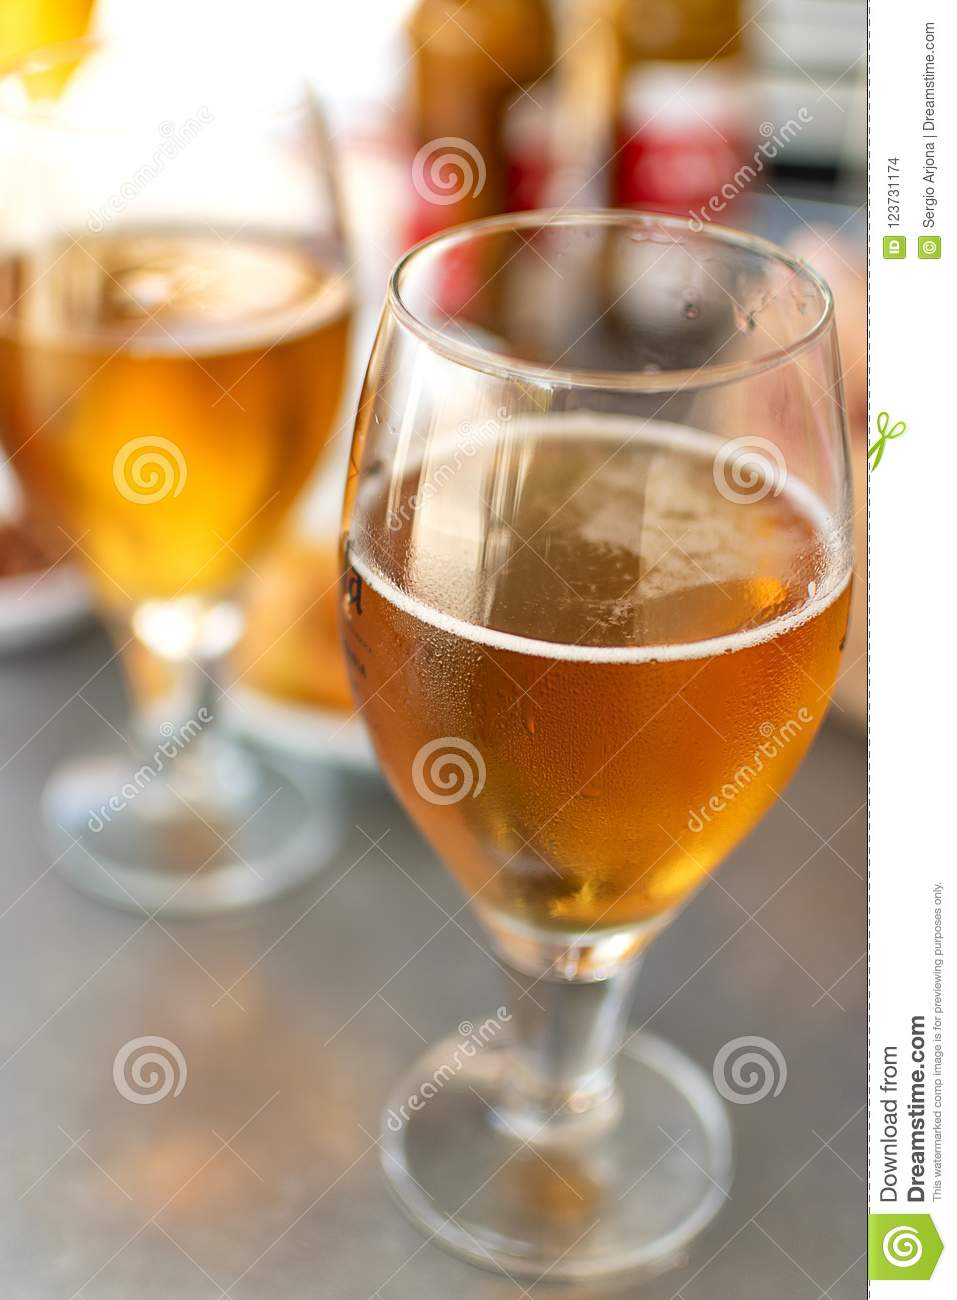 Beer glasses with plates to eat